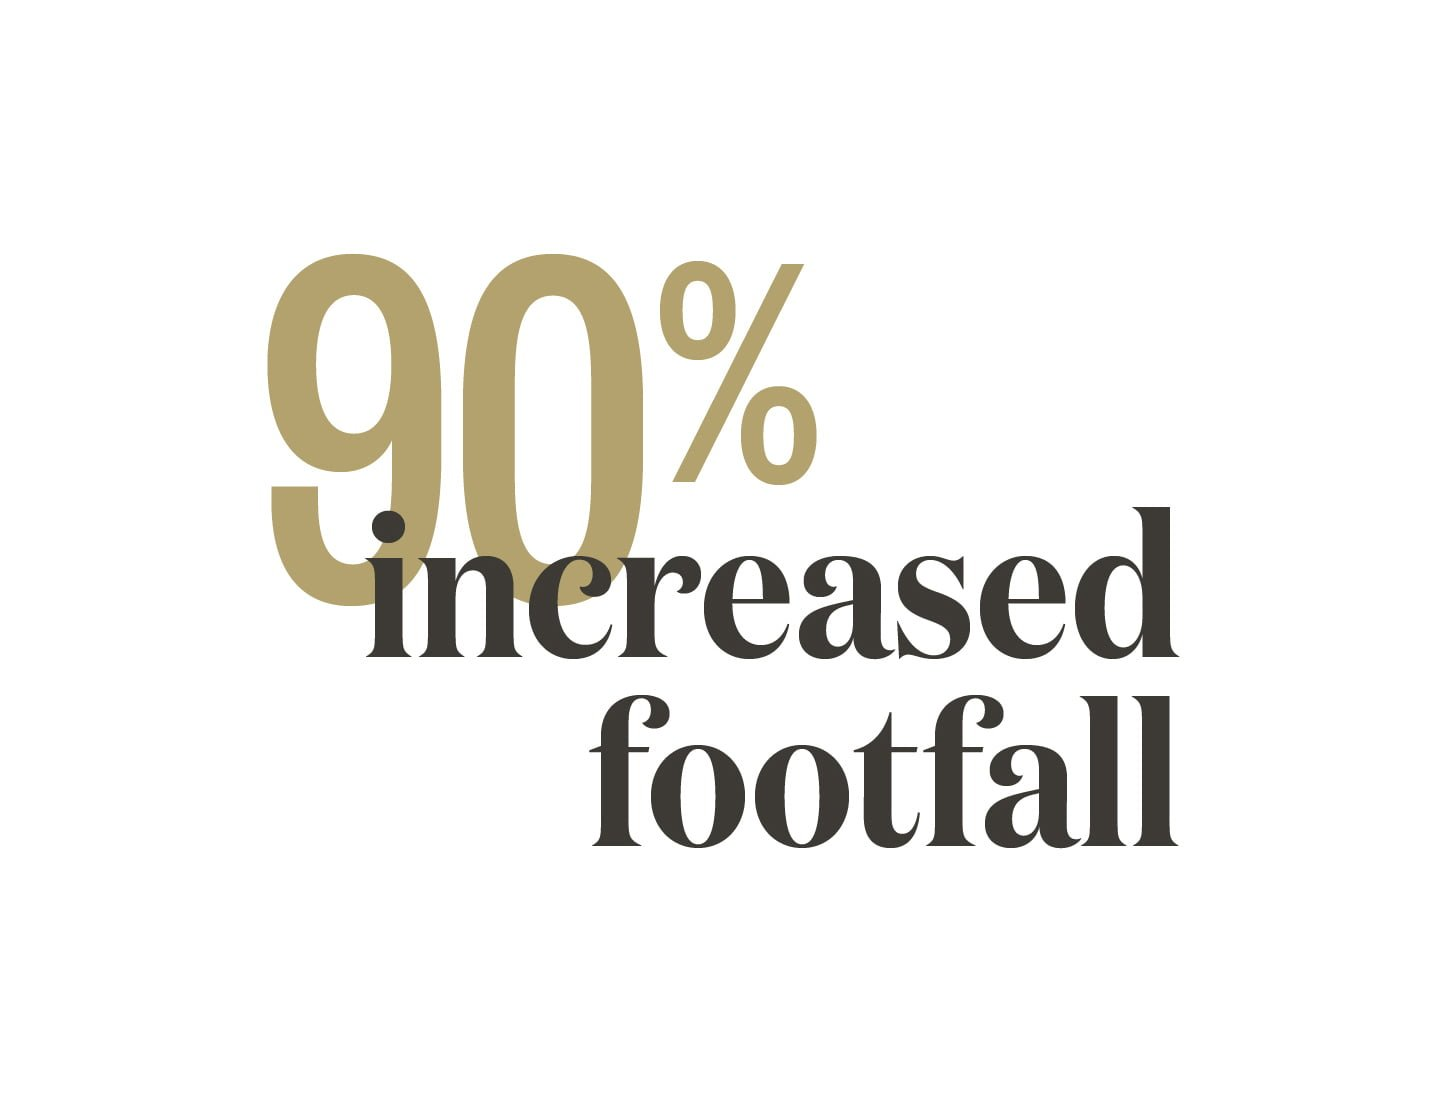 90 percent increased footfall